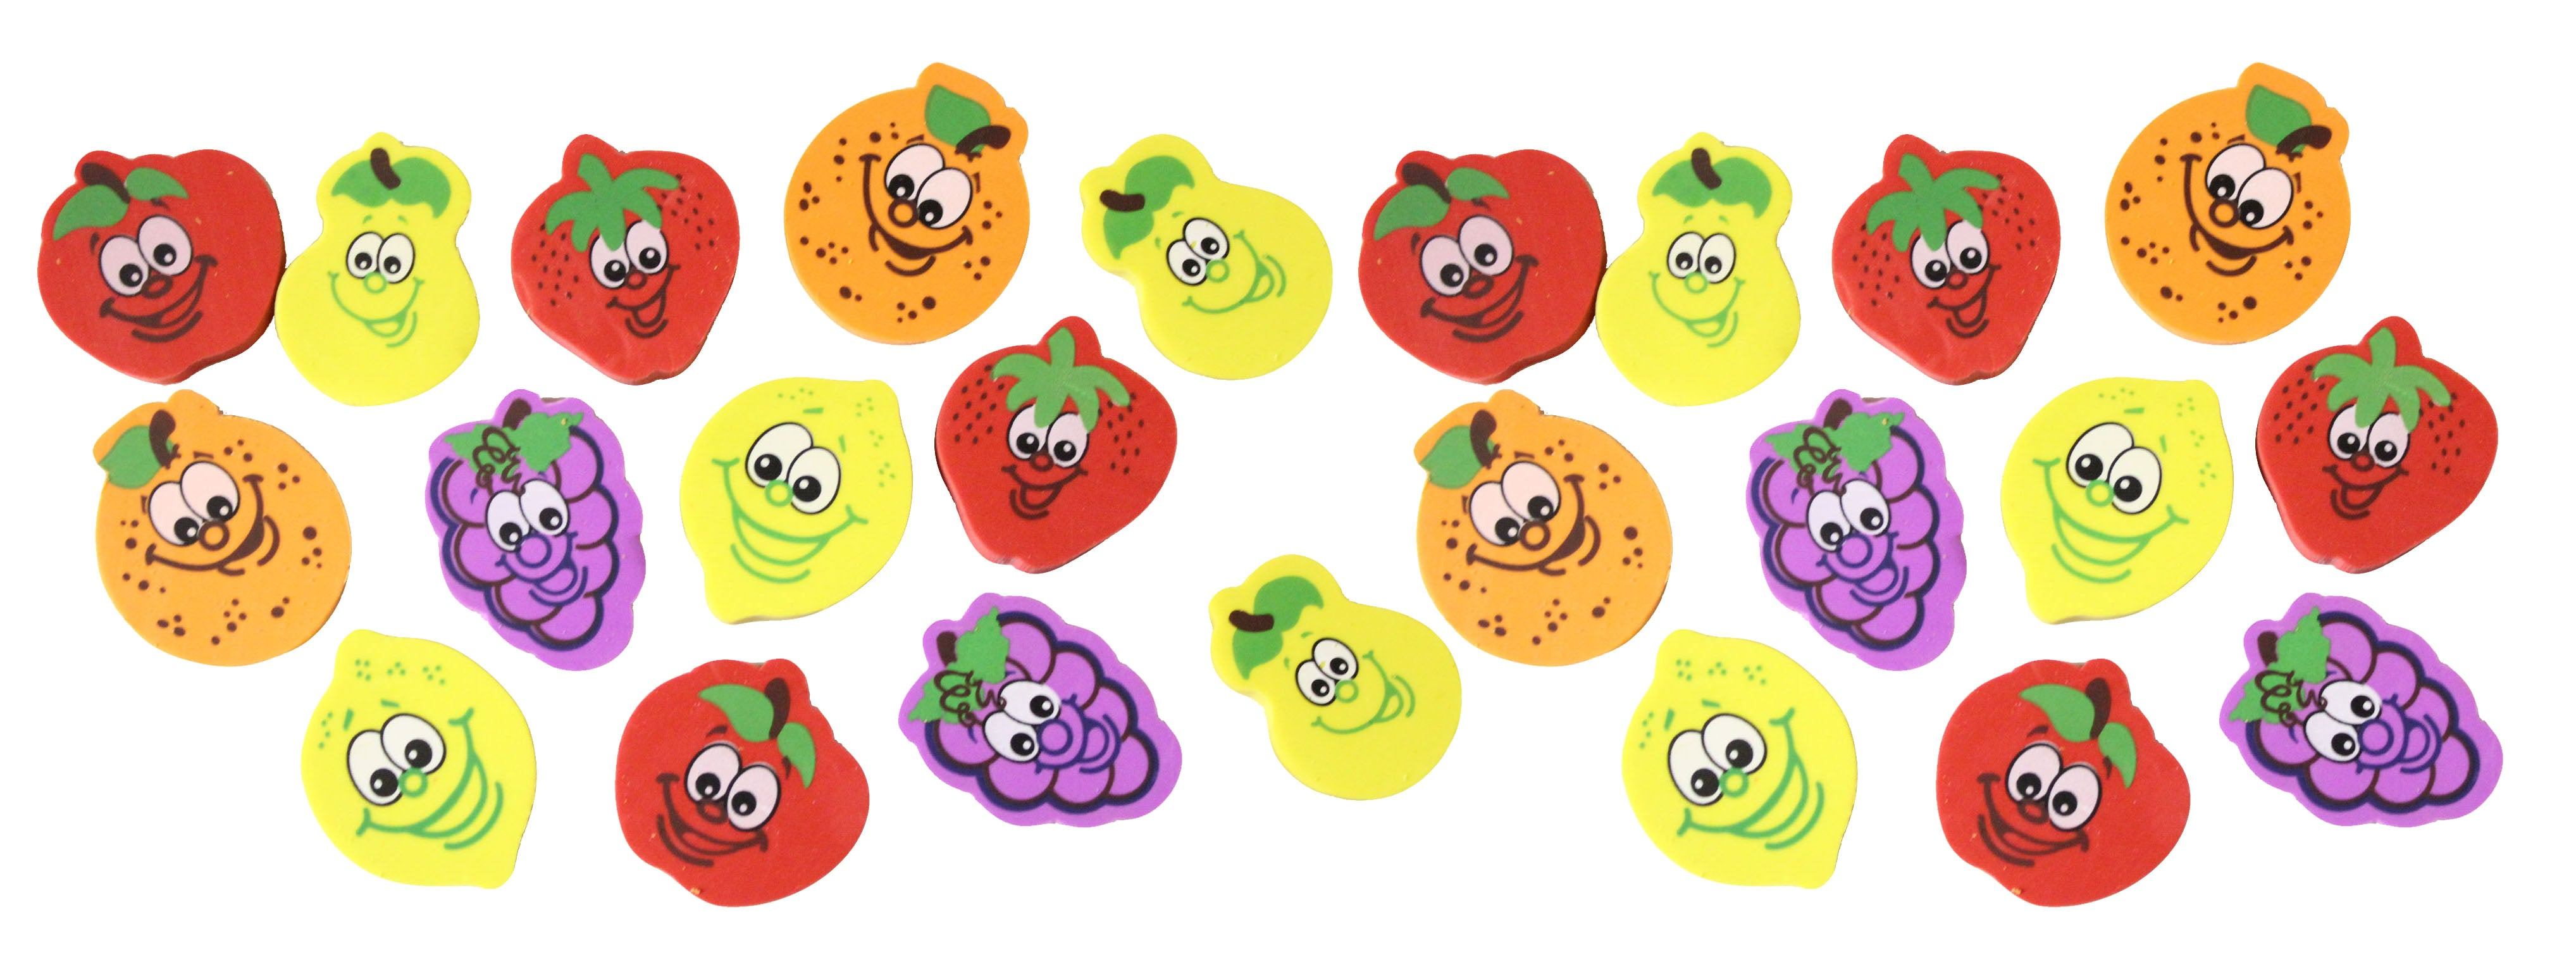 Fruit Erasers - Novelty and Functional Adorable Eraser Novelty Treasure Prize, School Classroom Supply, Math Counters - Sorting - Party Favor